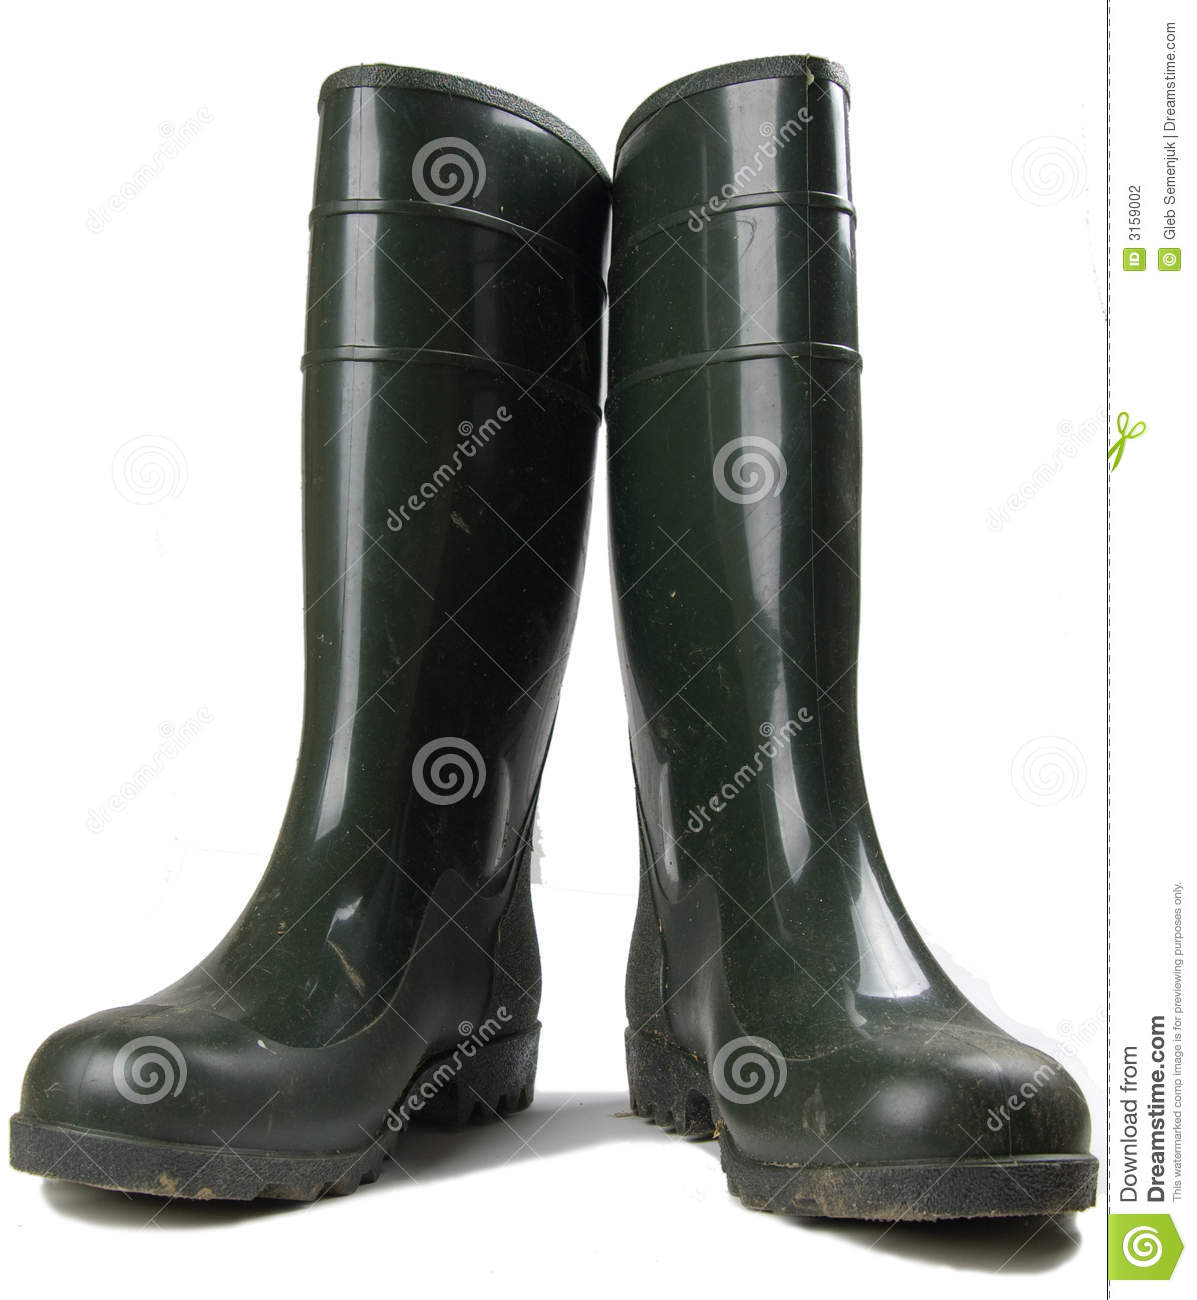 pair of rubber work boots stock photography image 3159002